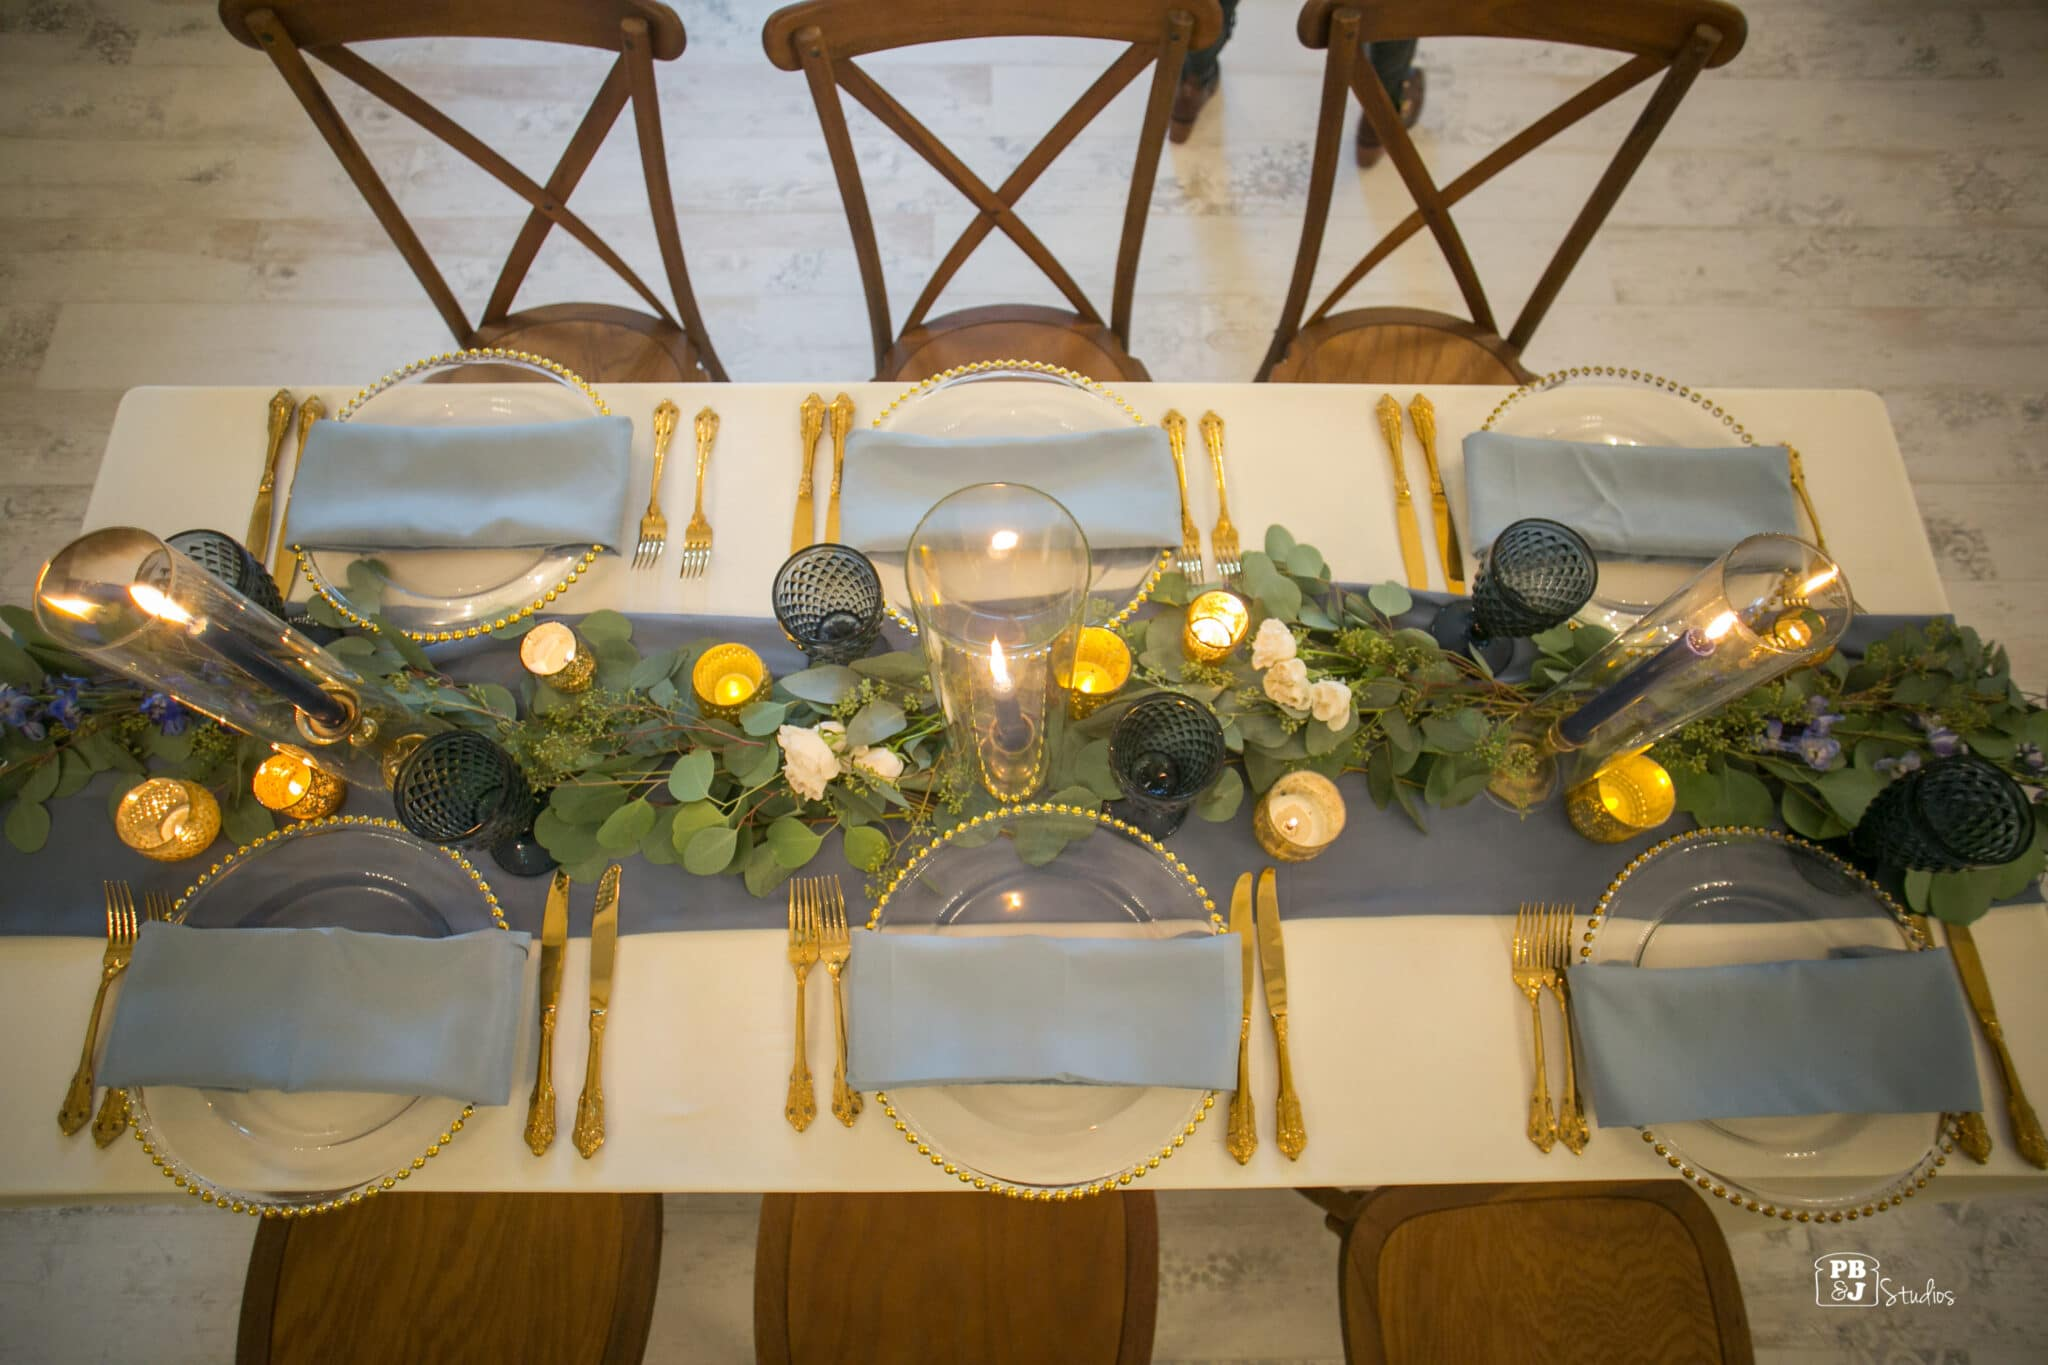 overhead view of table set with flowers & candles